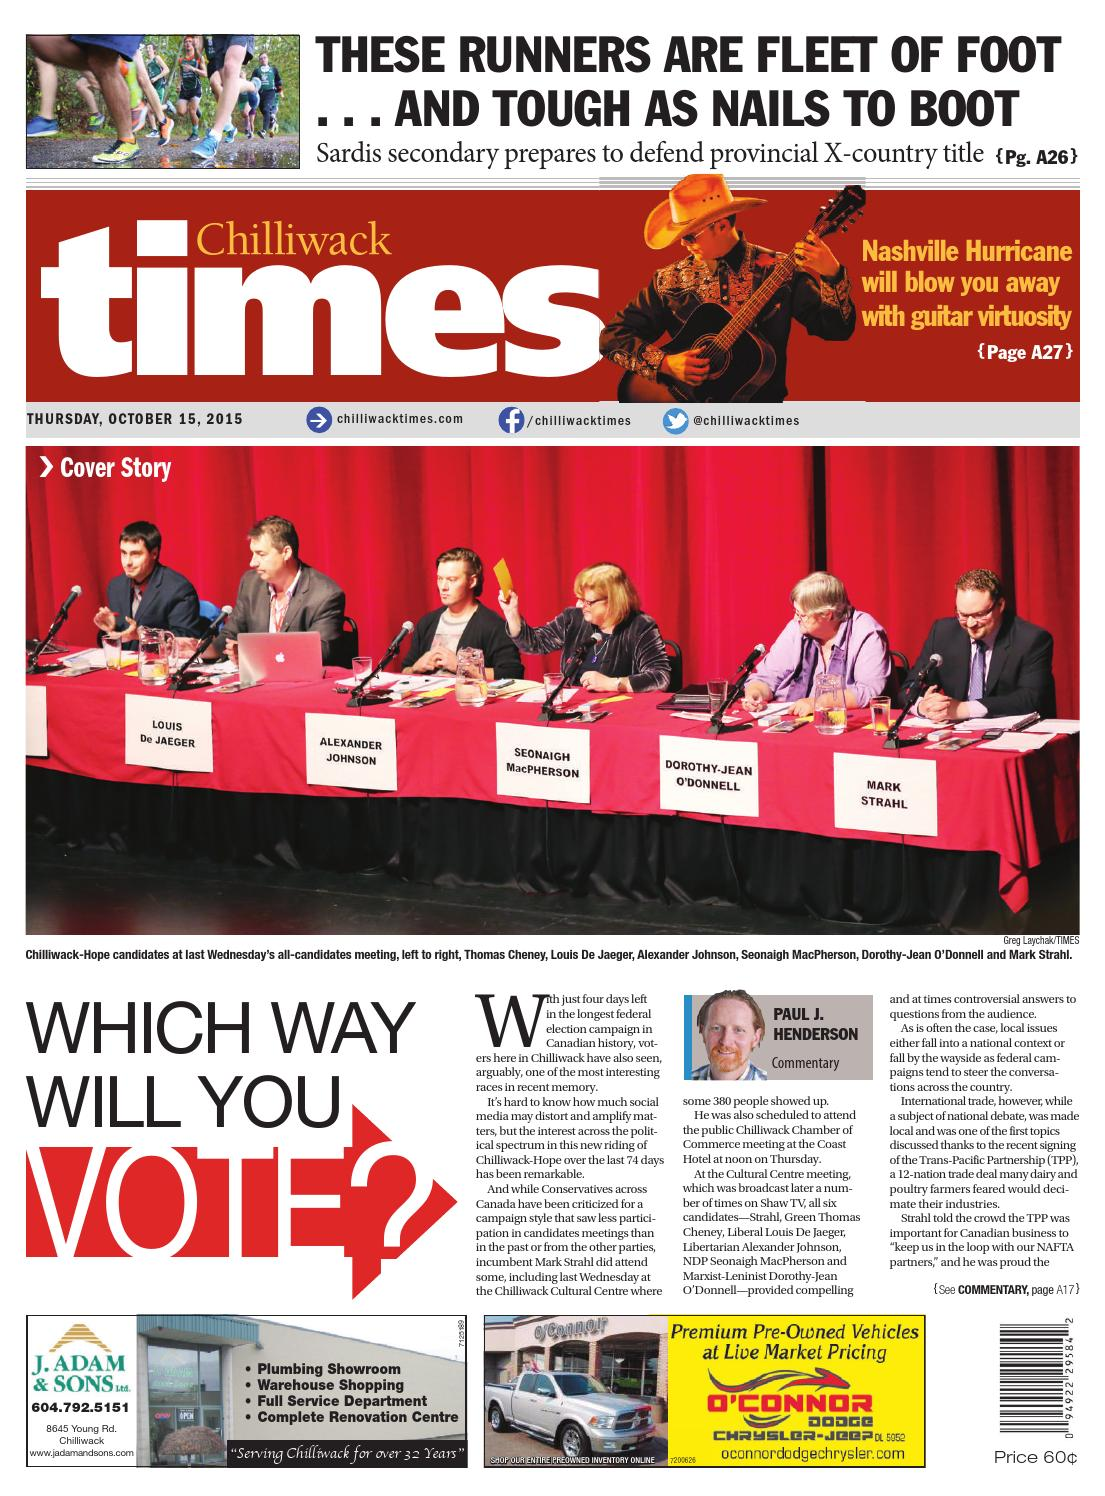 Chilliwack Times October 15 2015 by Chilliwack Times - issuu